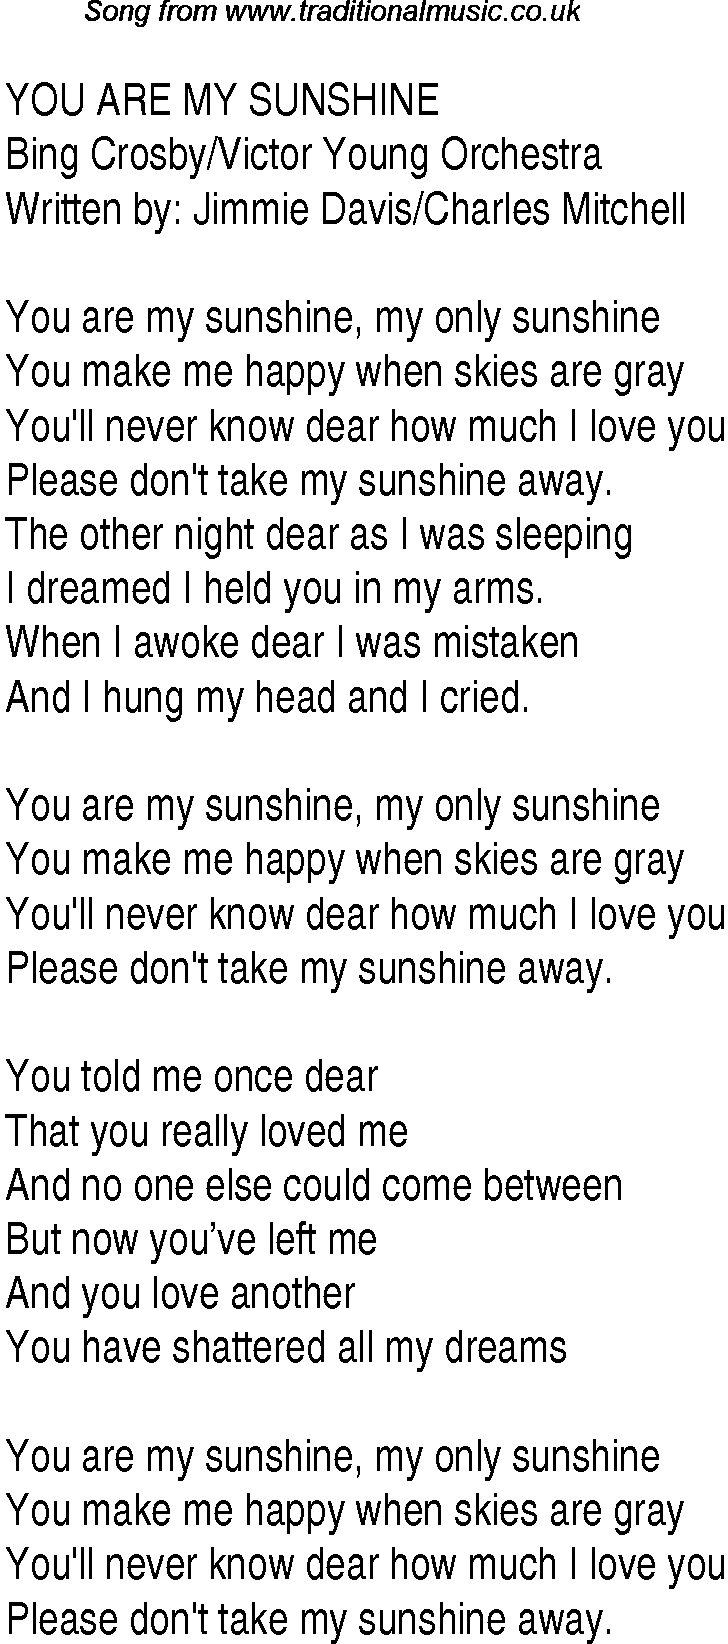 You are my honey bunch lyrics